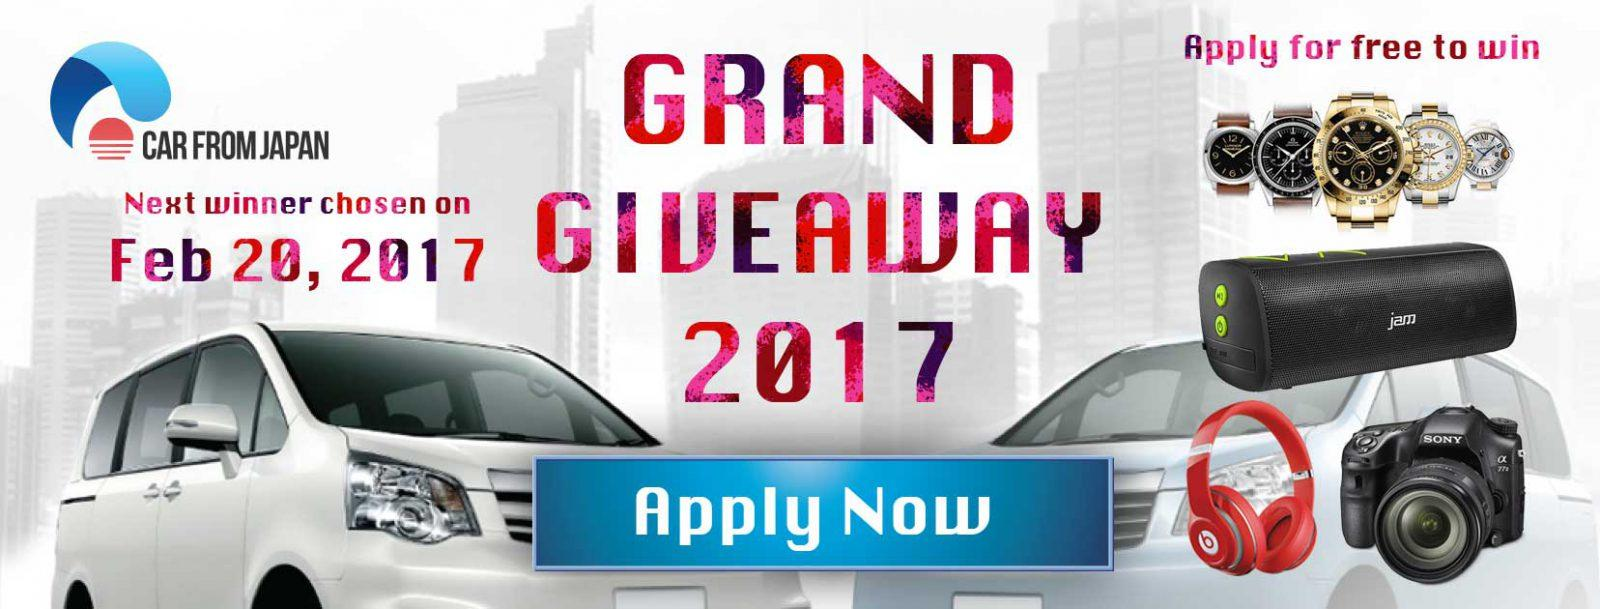 Free Car Giveaway >> Car Giveaway Campaign 8211 Is It Free Car Scam Or Real